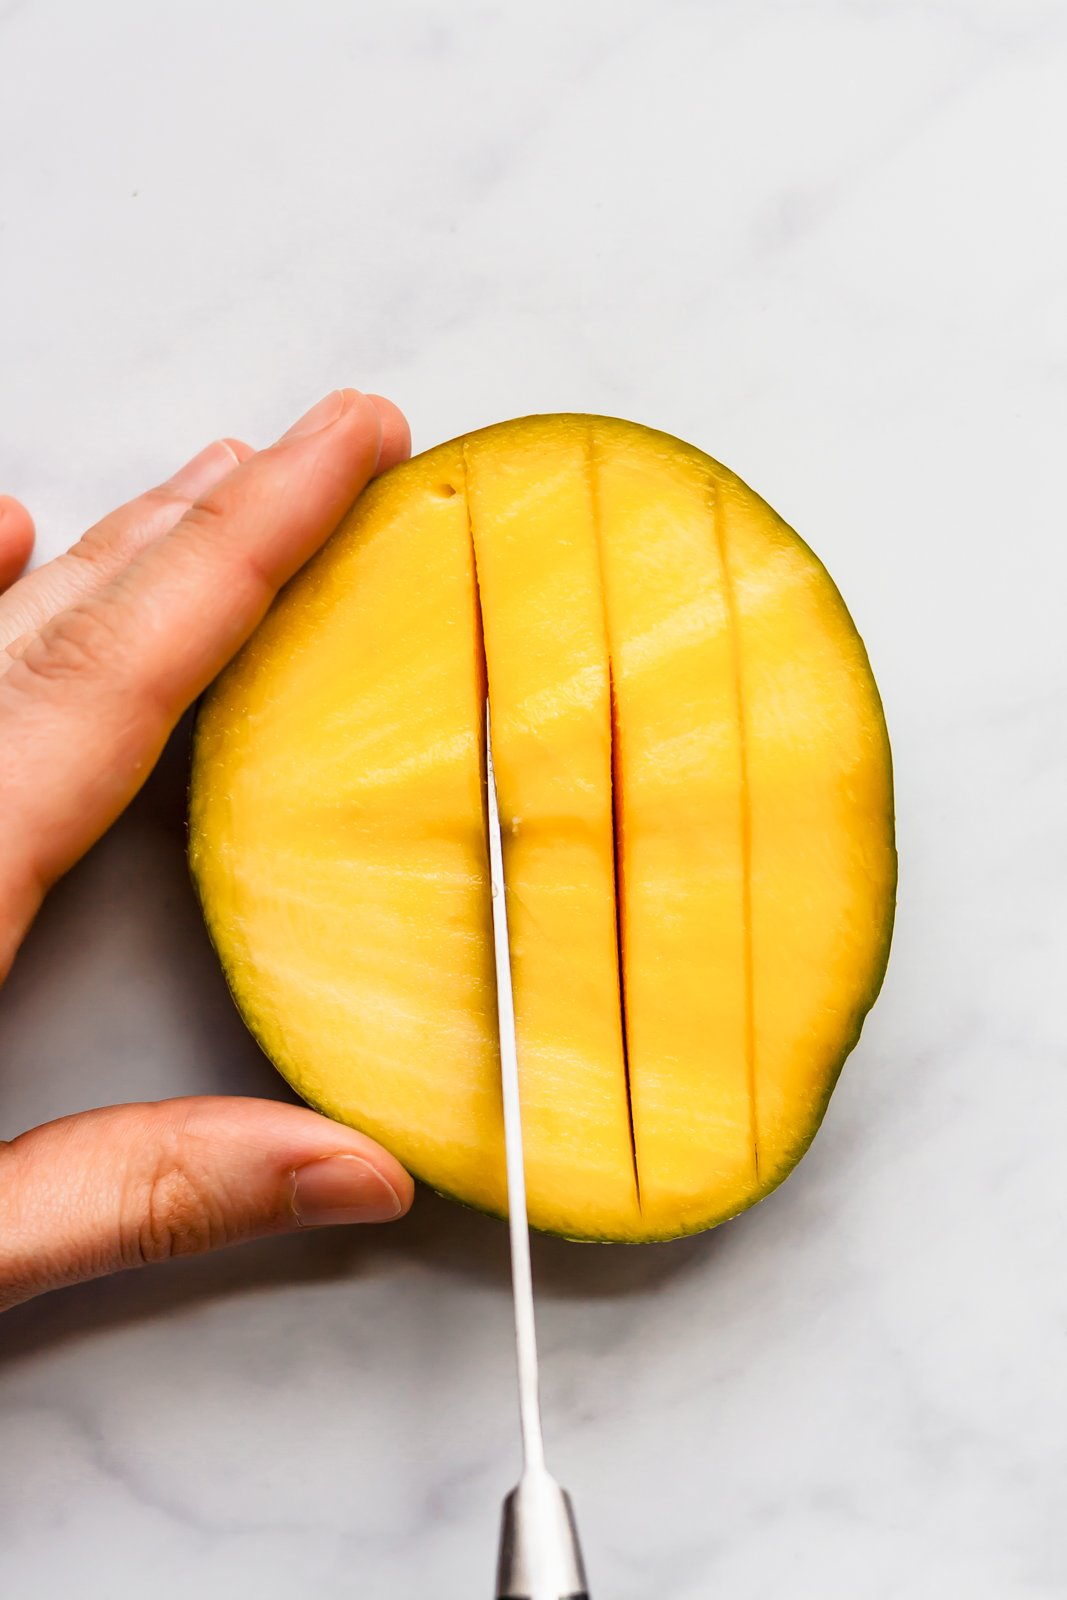 cutting half of a mango into slices